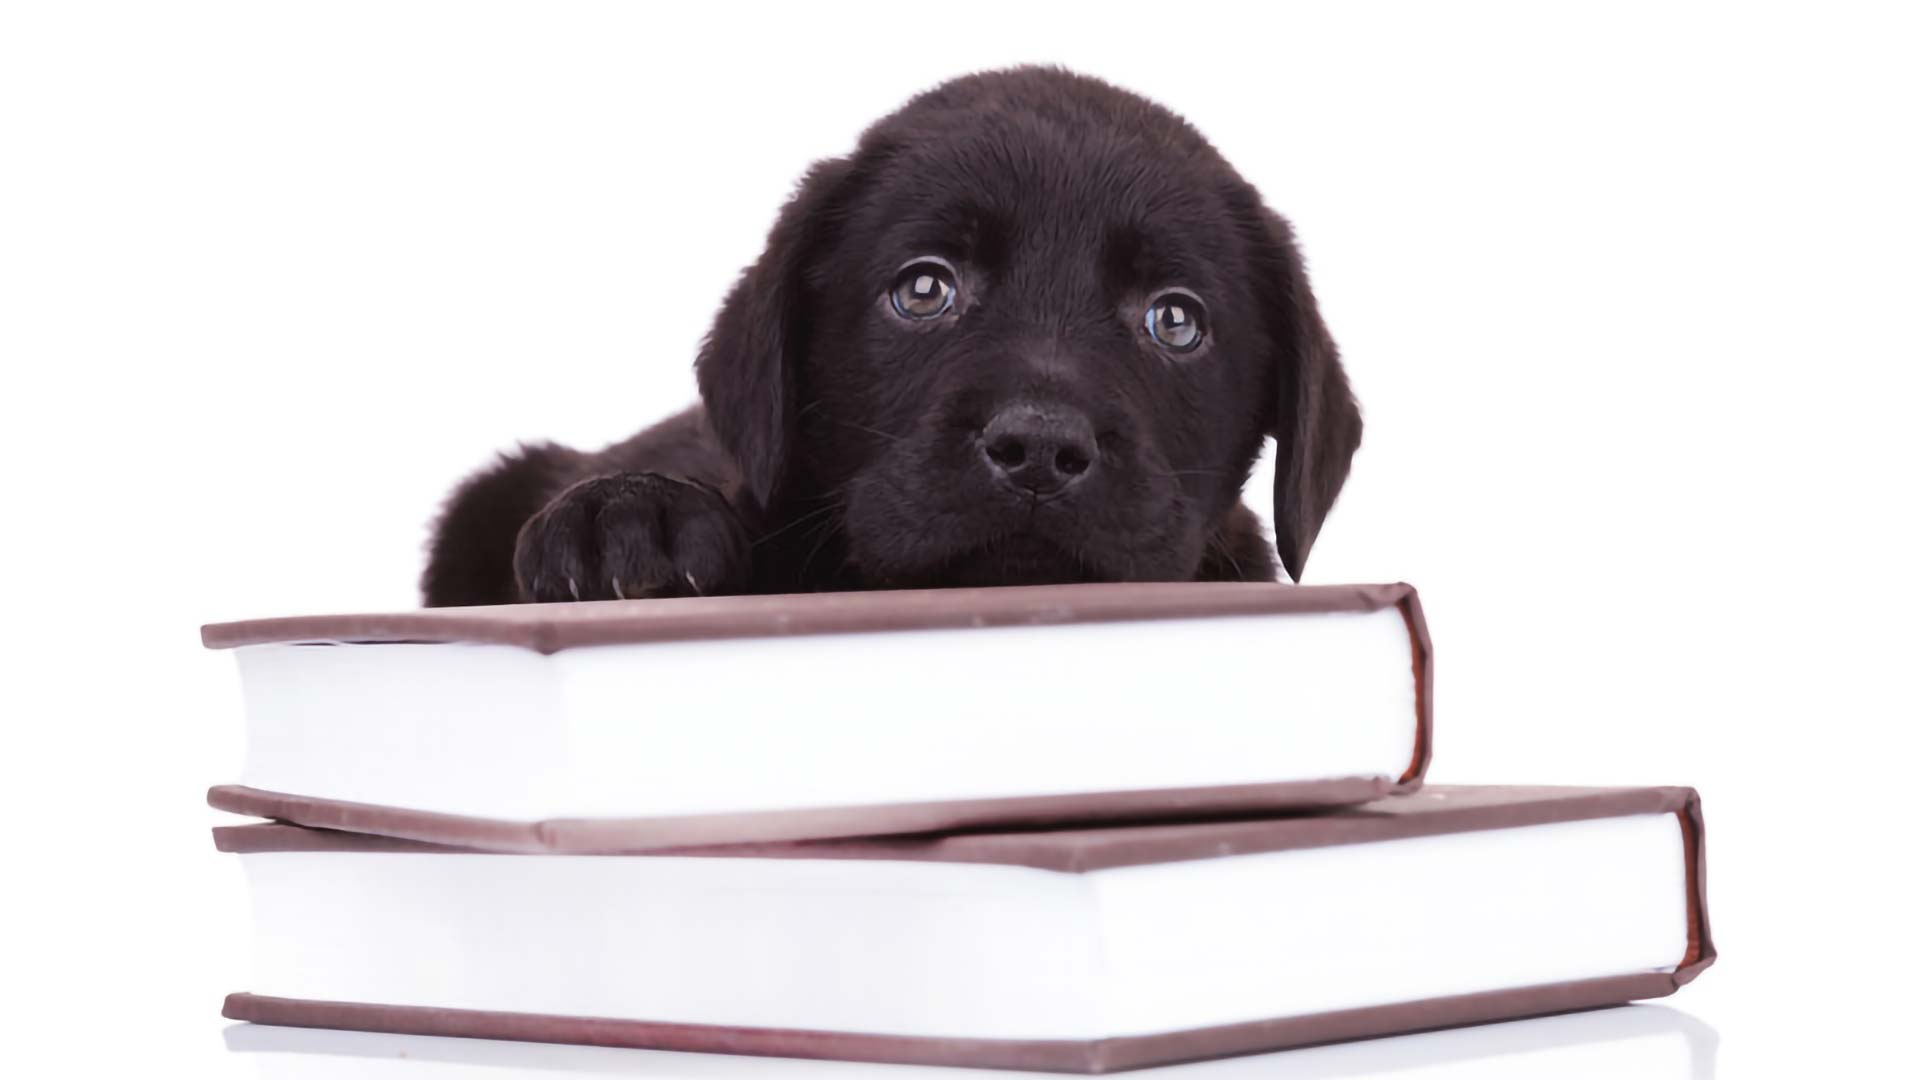 Dogs are the best, especially on National Dog Day, even when I am reading the law books at Tina Barberi's law firm